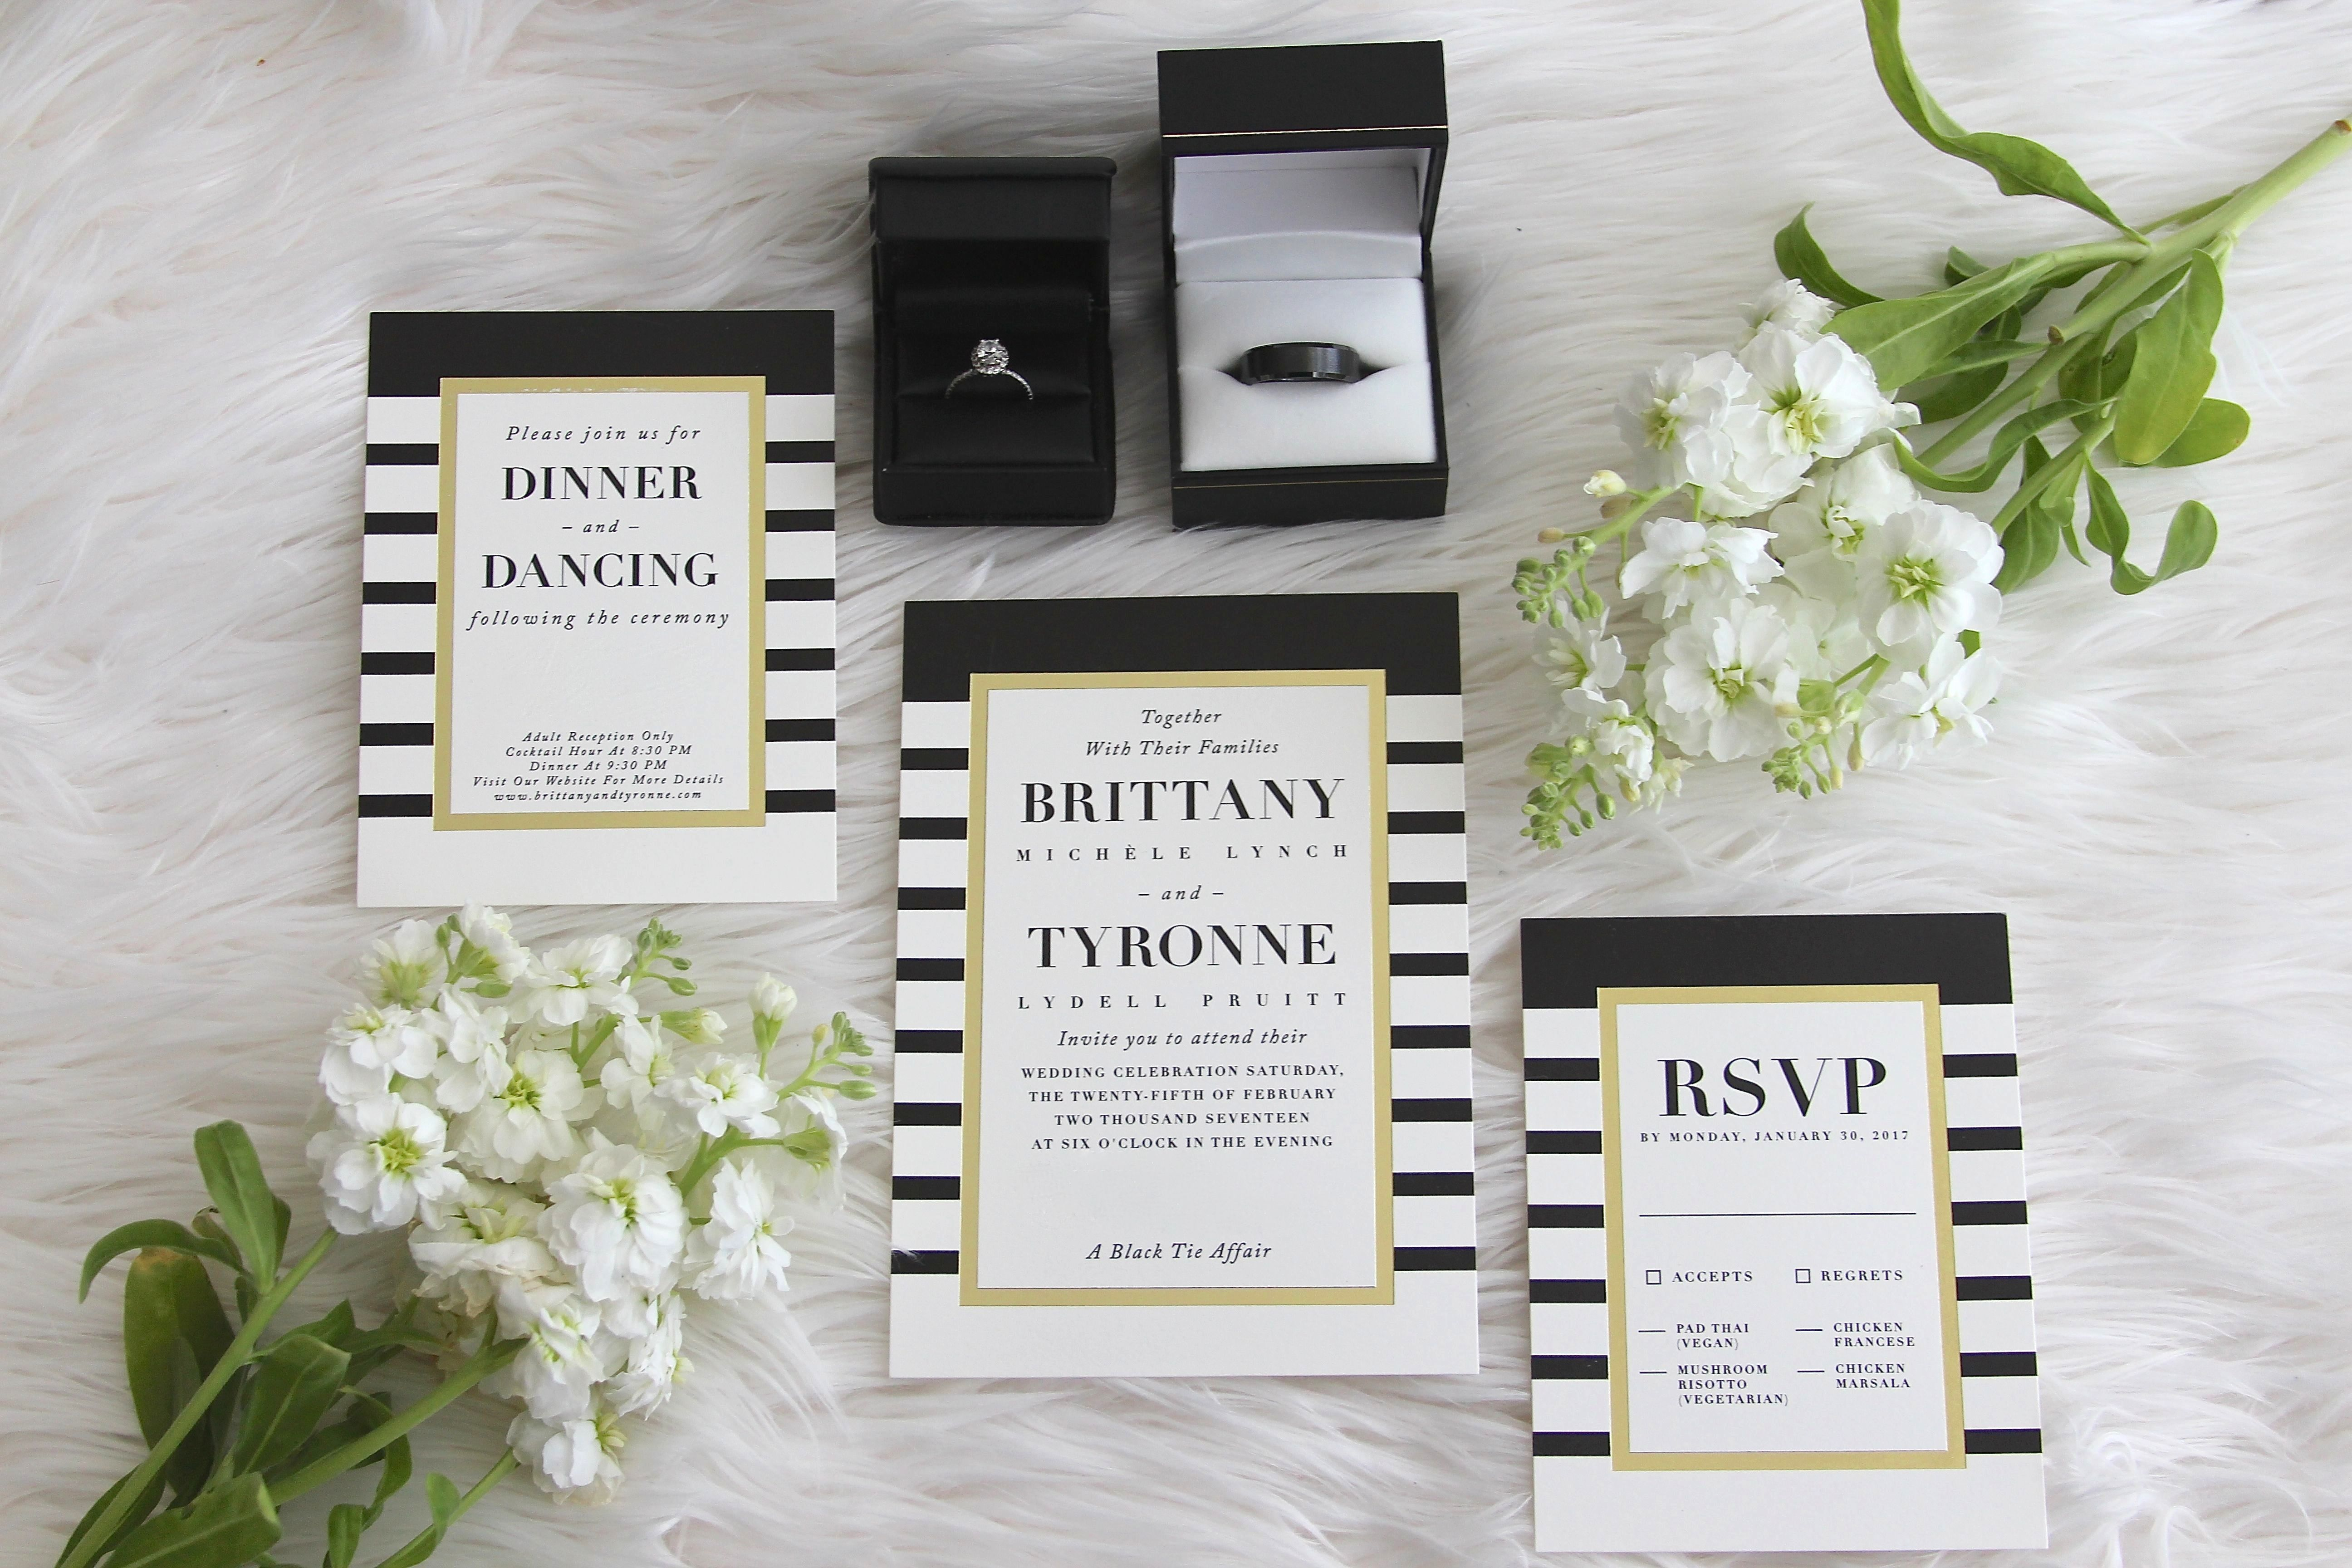 modern chic minted wedding invitations minted wedding invitations Minted Minted Wedding Wedding Wedding Invitations Black Tie Black Tie Affair